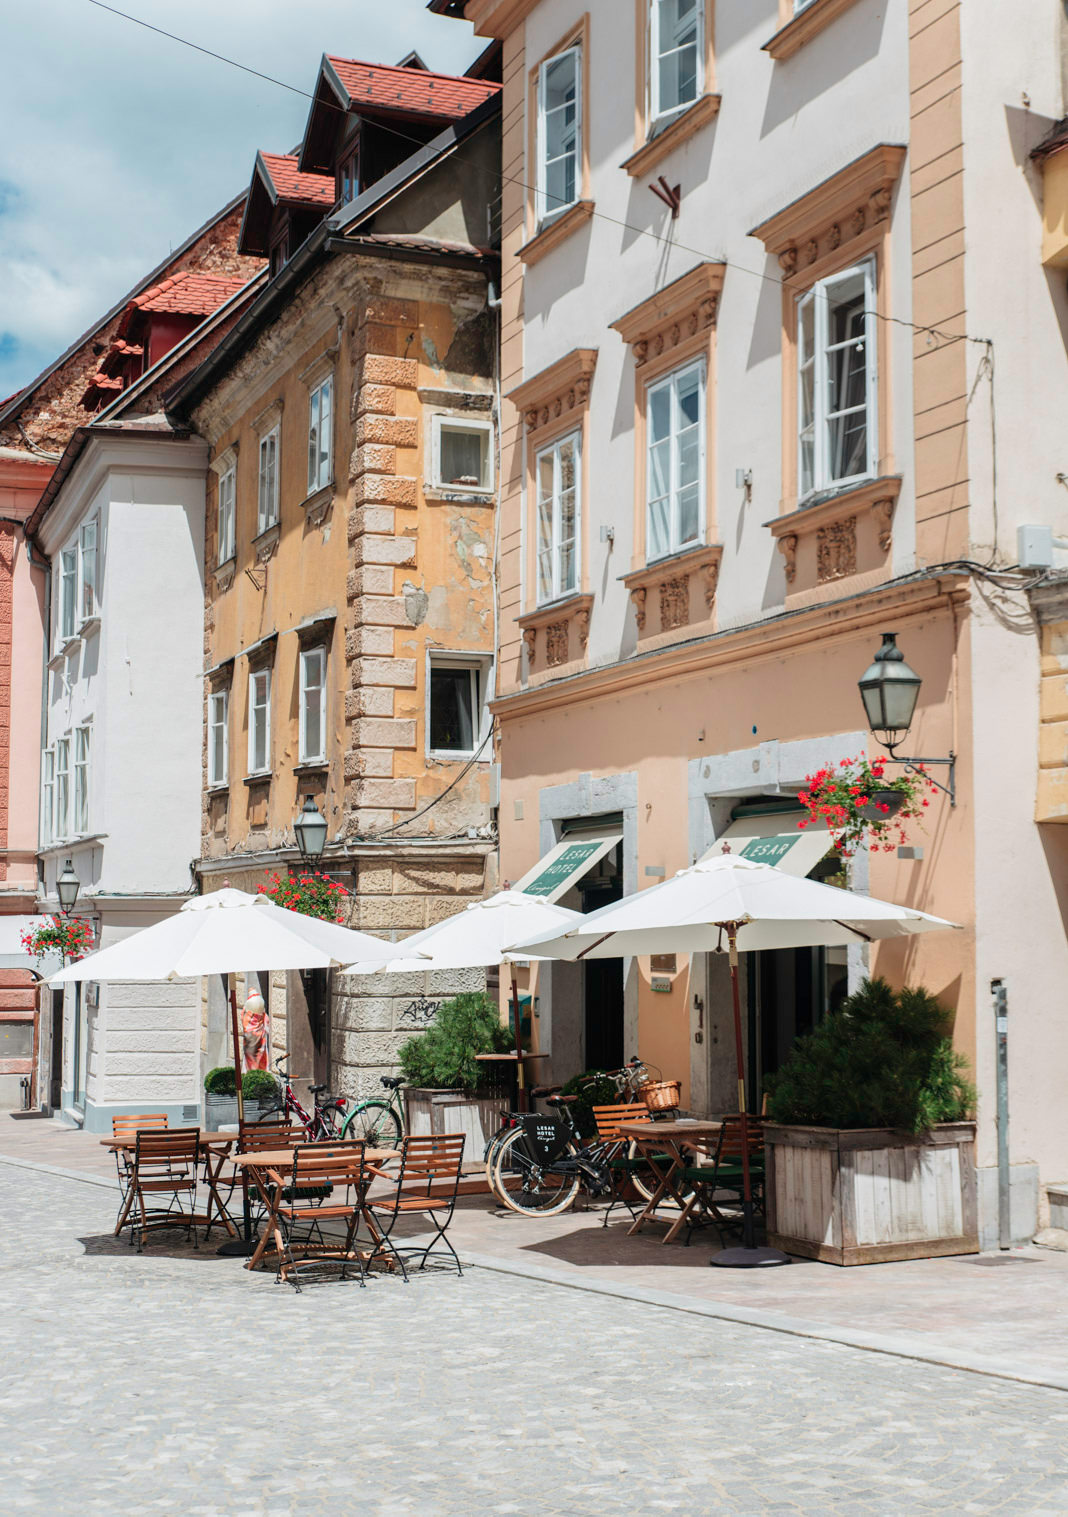 Blog-Mode-And-The-City-Lifestyle-Roadtrip-Europe-Slovenie-Ljubljana-Bled-4